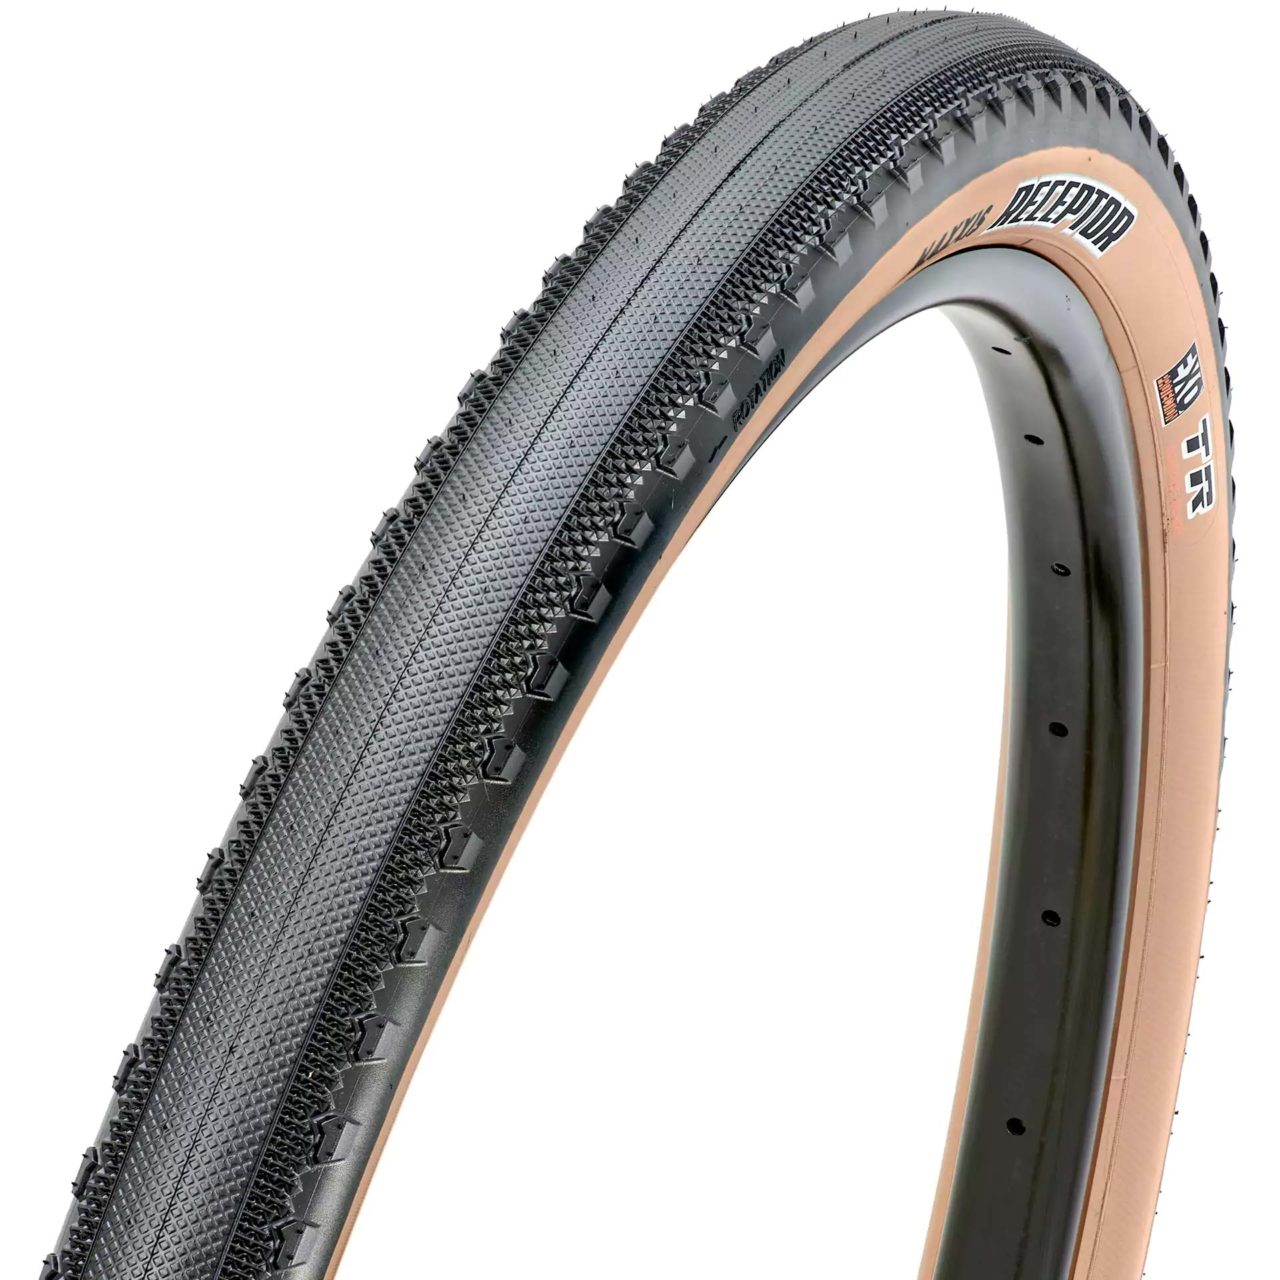 Maxxis Receptor bicycle tire with tan sidewall.